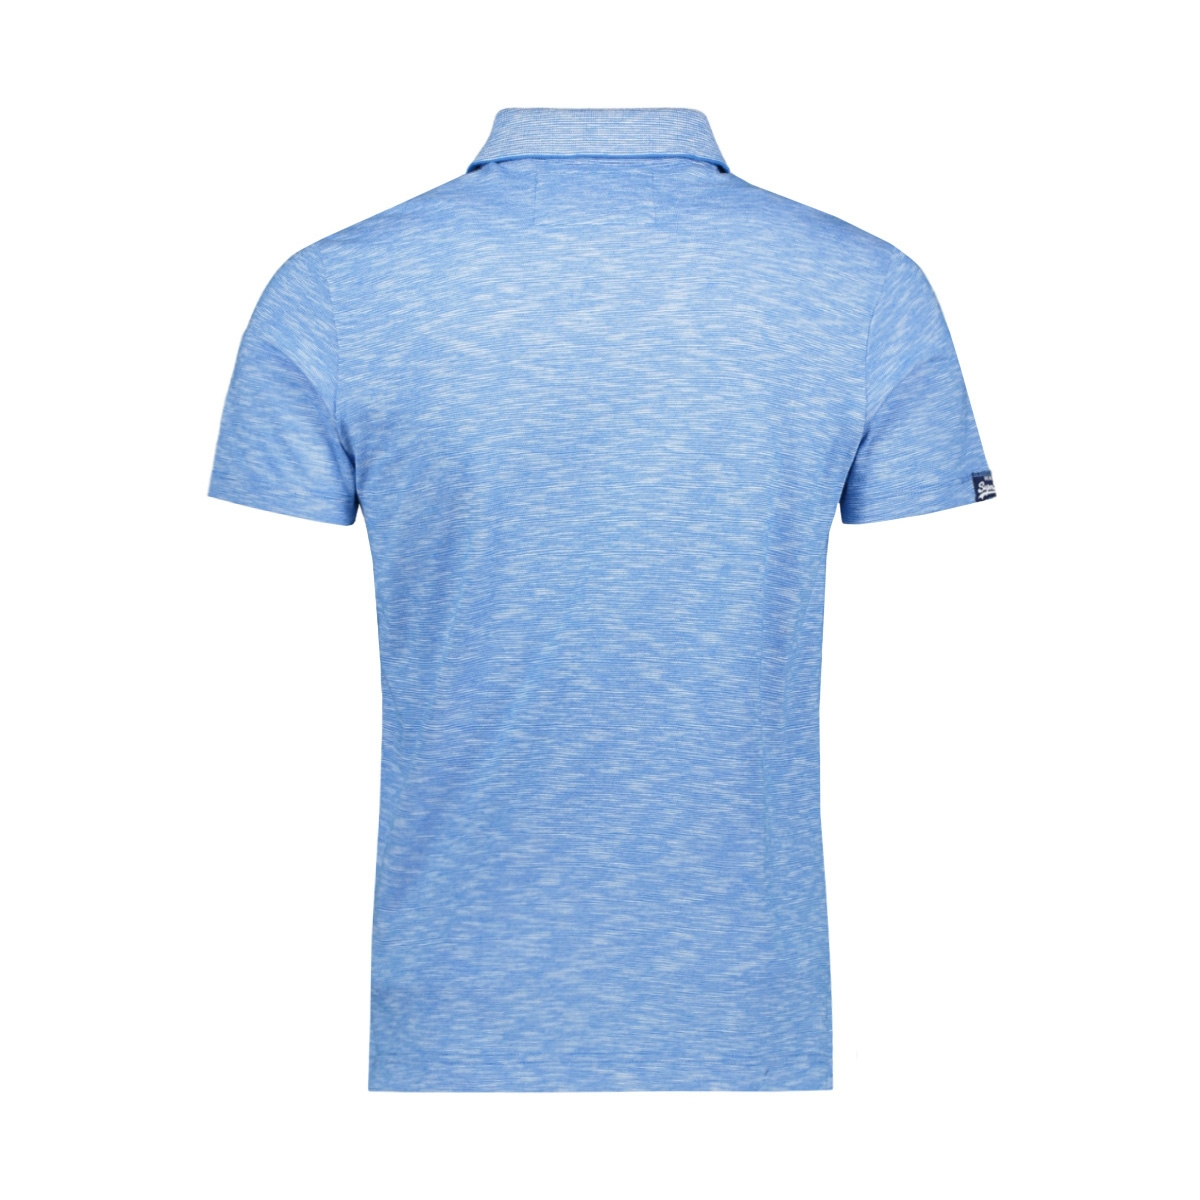 orange label jersey polo m1110021a superdry polo sky feeder